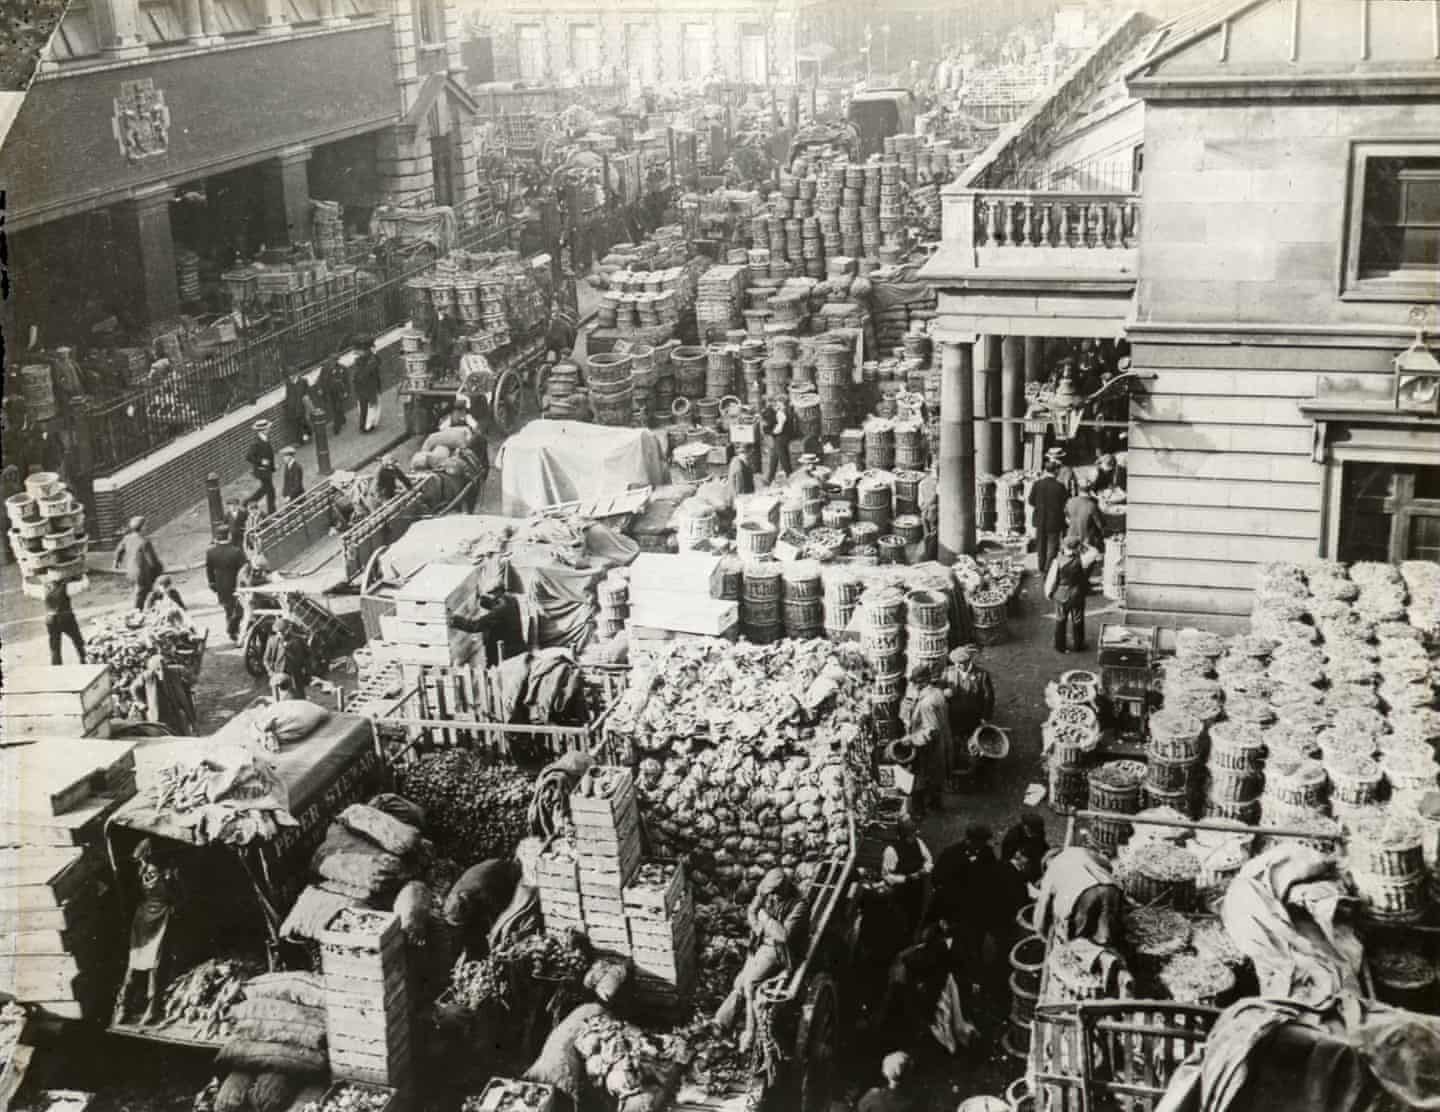 Some reinvented, others long lost London's markets 100